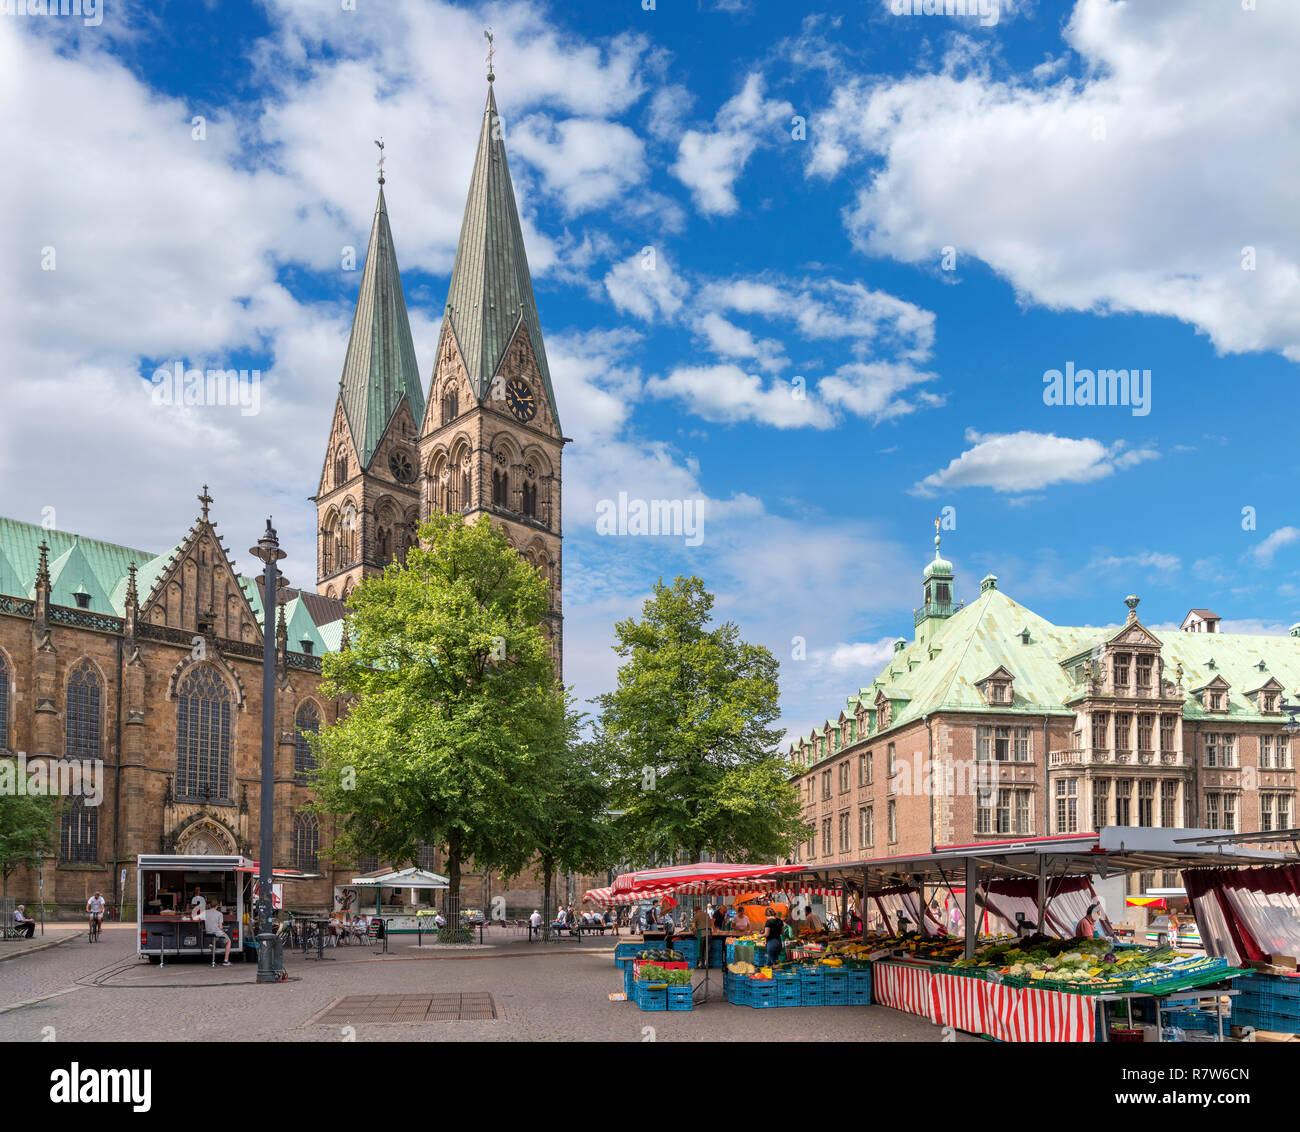 Market stalls on Domshof with the back of the Town Hall (Rathaus) to the right and Cathedral to the left, Bremen, Germany Stock Photo